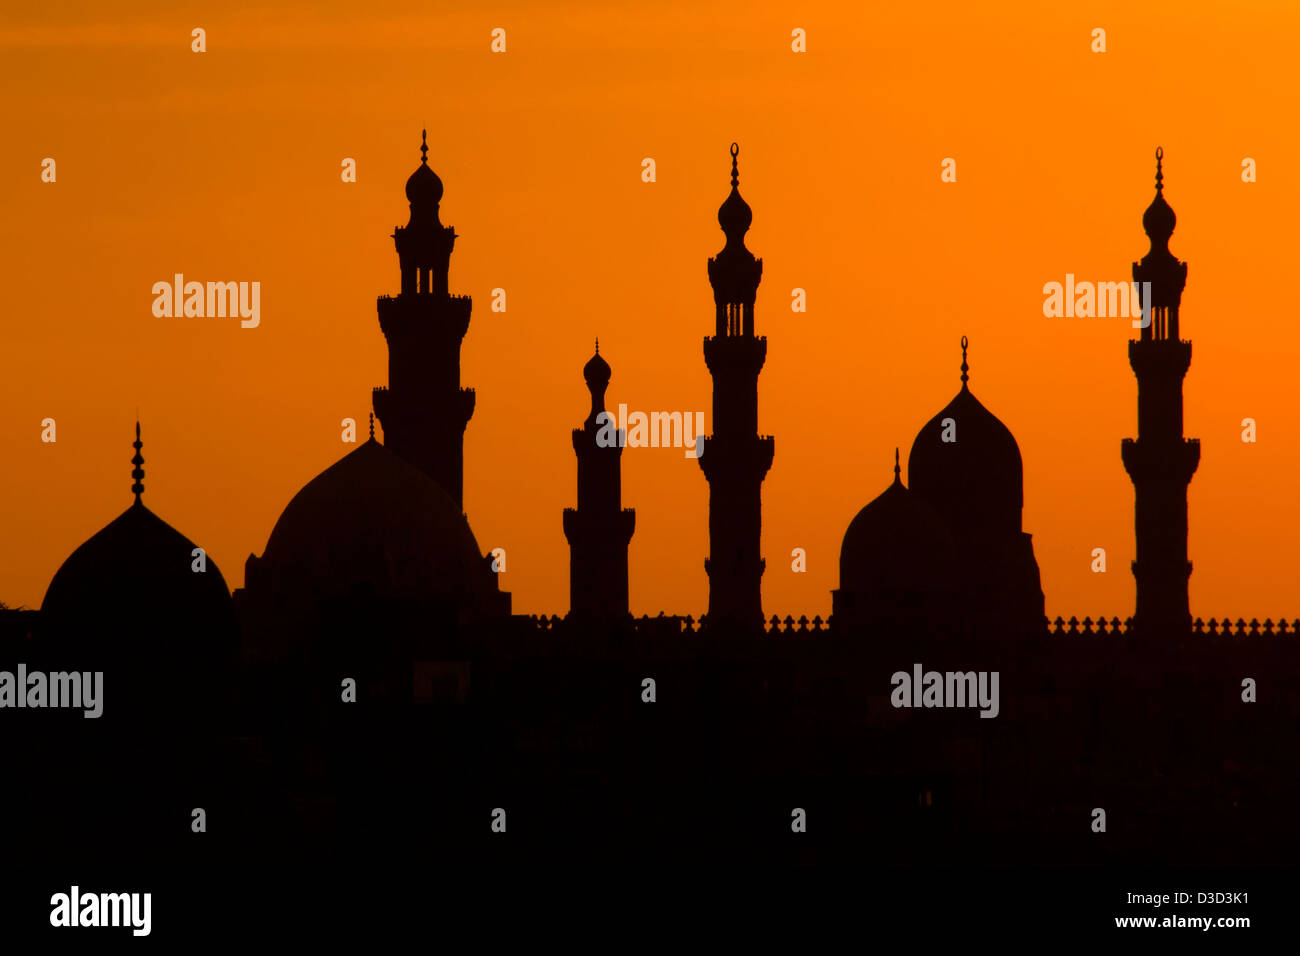 The Sultan Hassan Mosque silhouetted at sunset. Islamic Cairo, Egypt - Stock Image